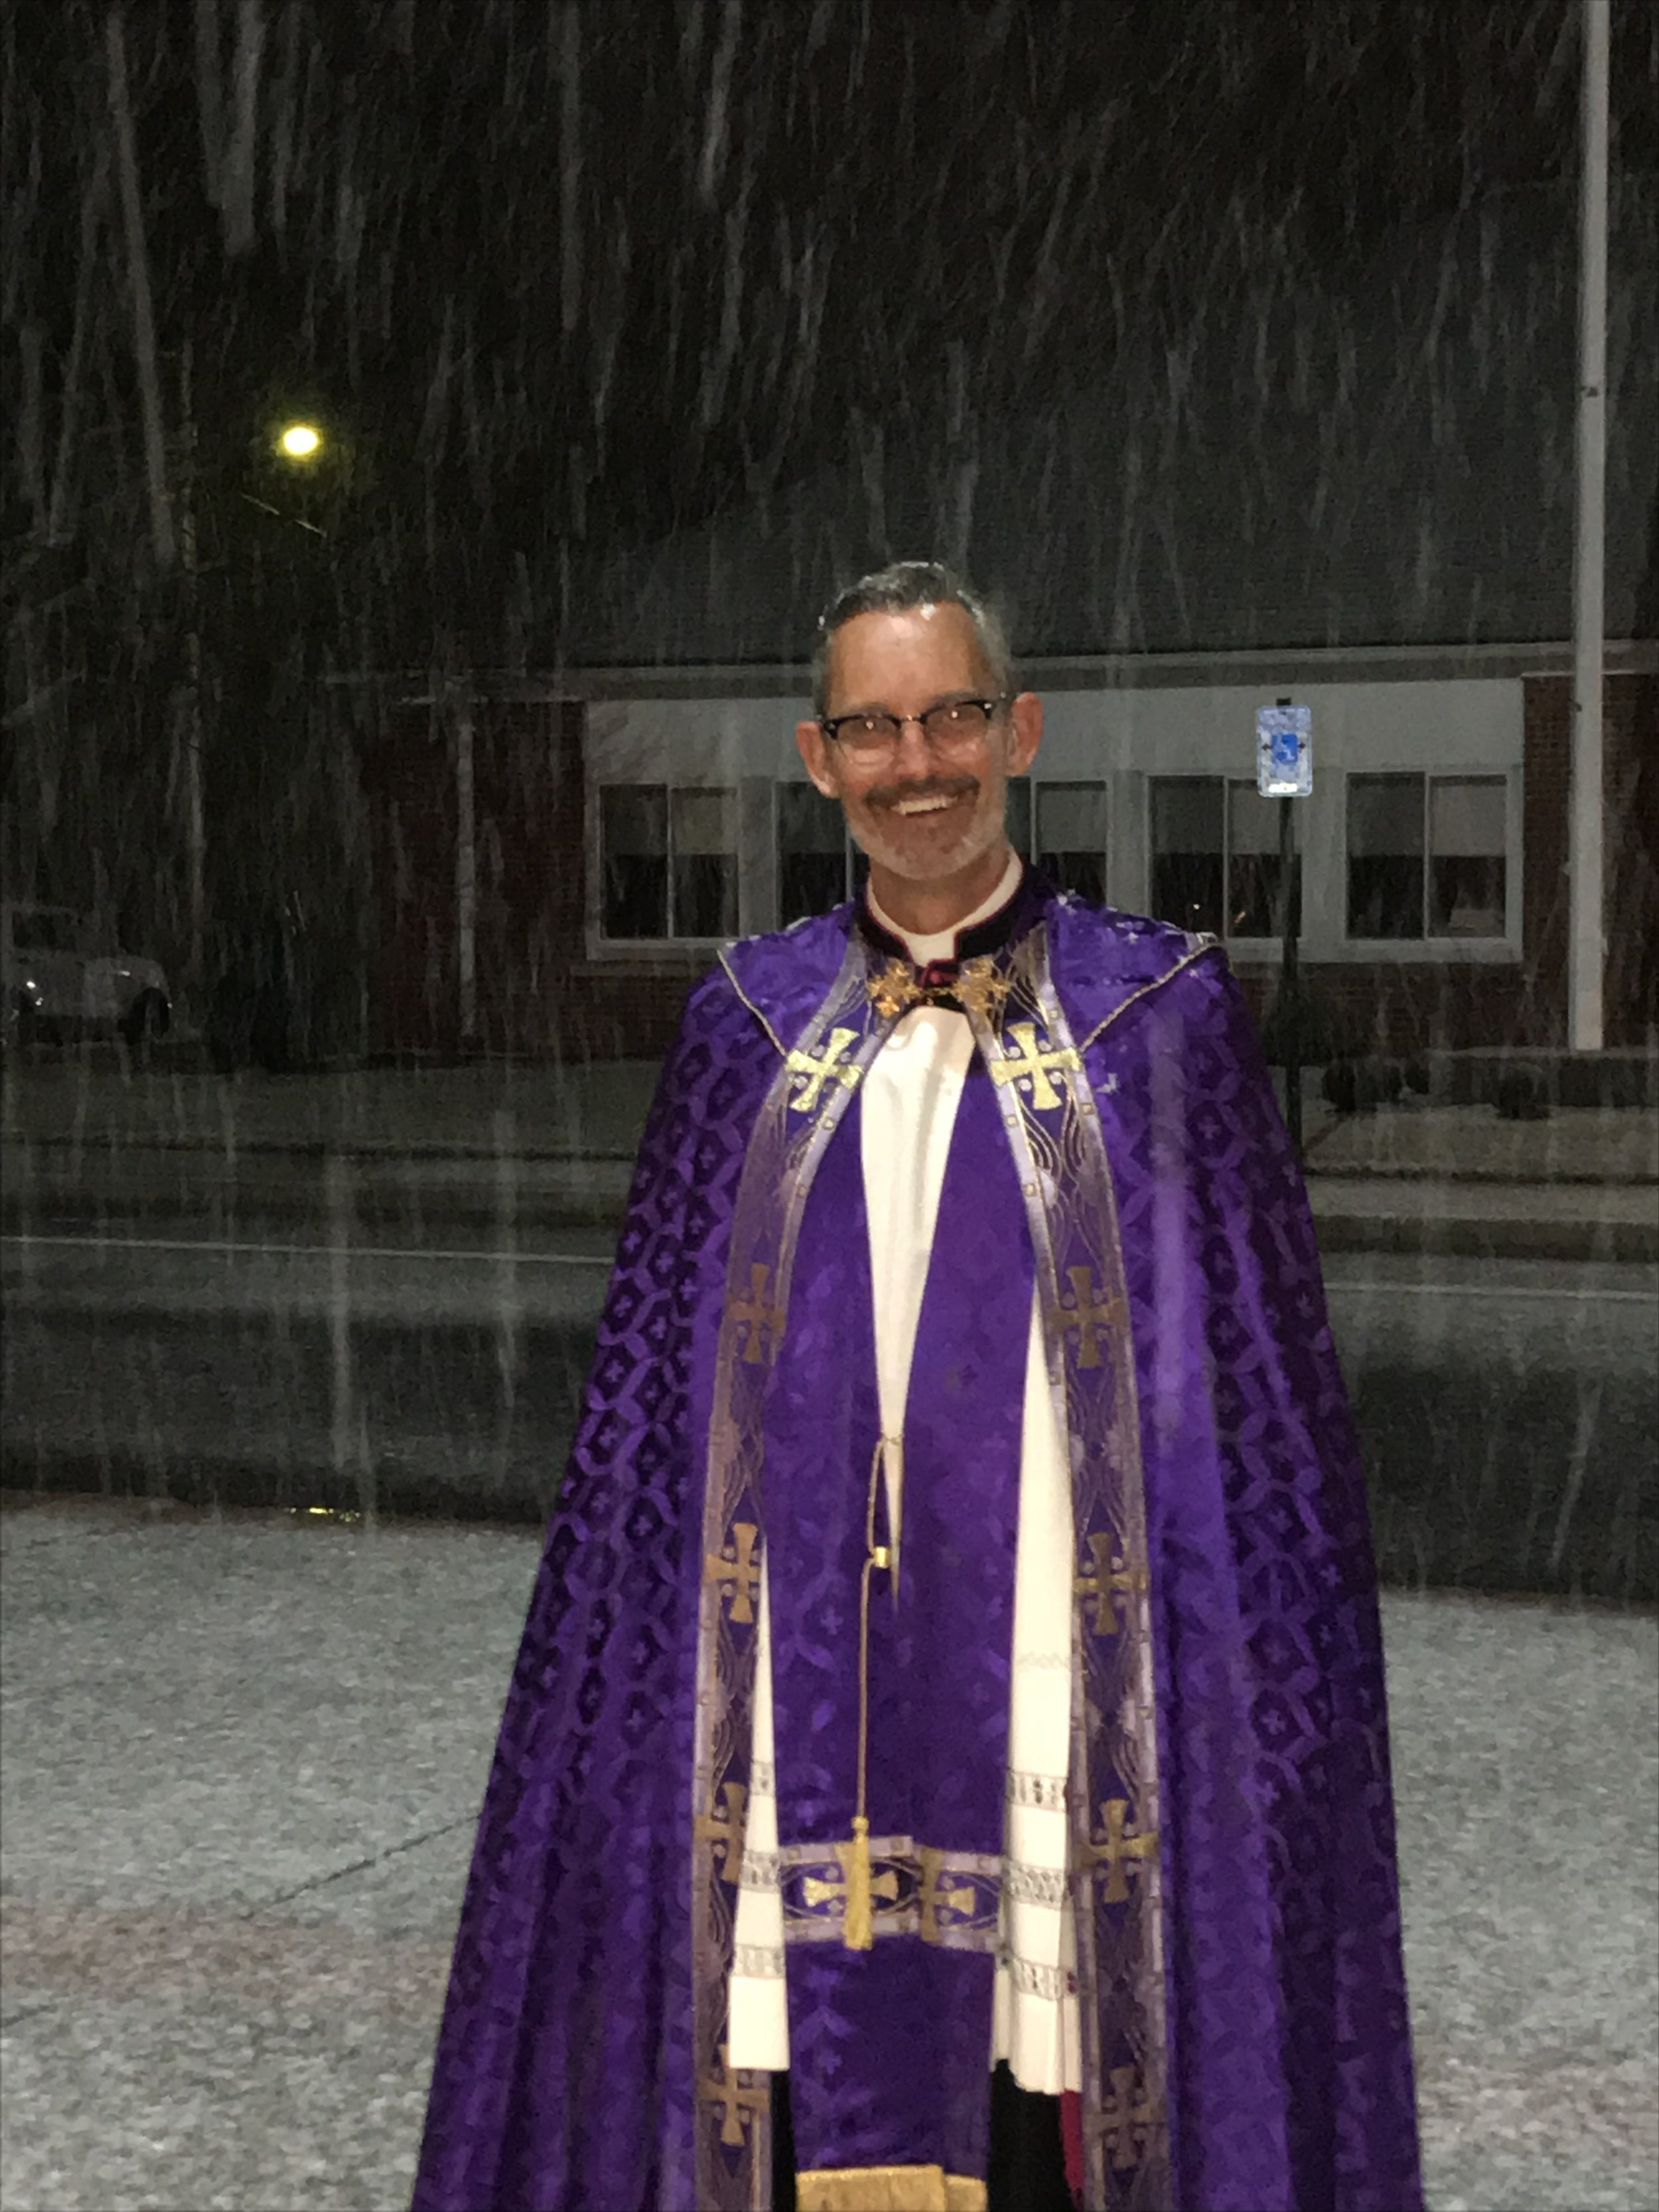 Monsignor Cook enjoys the New England weather on the last night of the Mission!